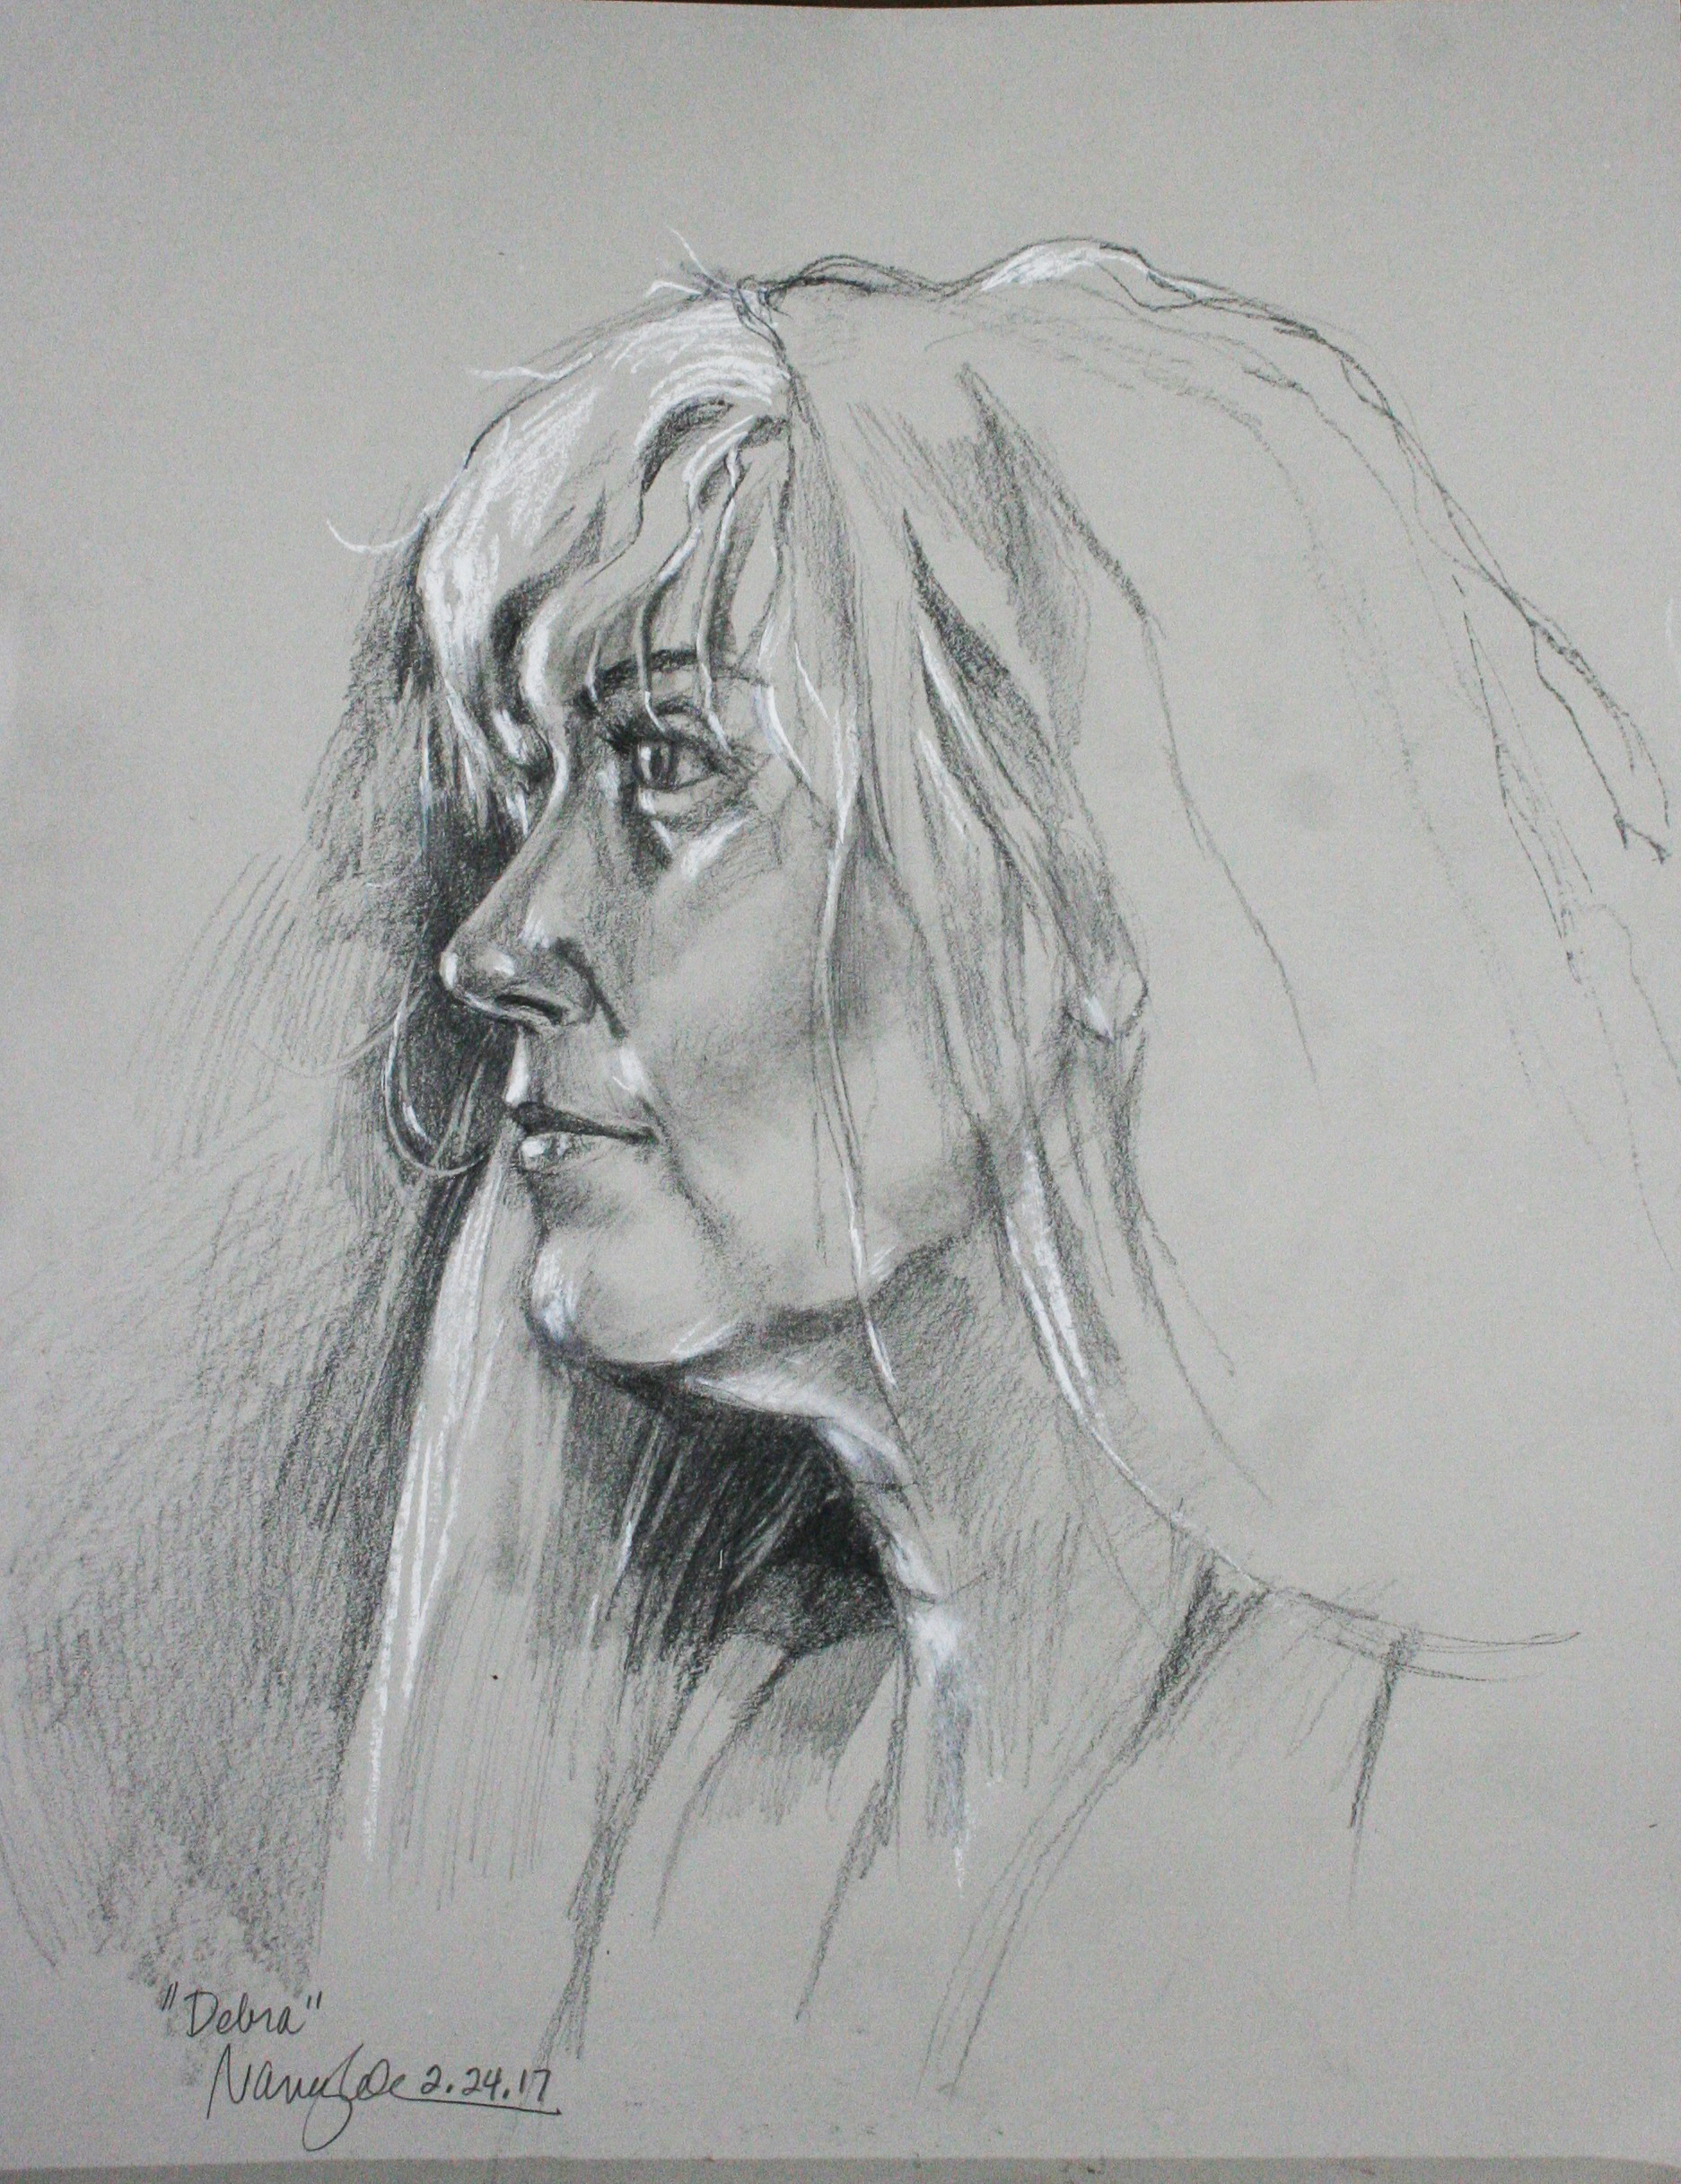 Nancy Lick did this two and a half hour drawing.